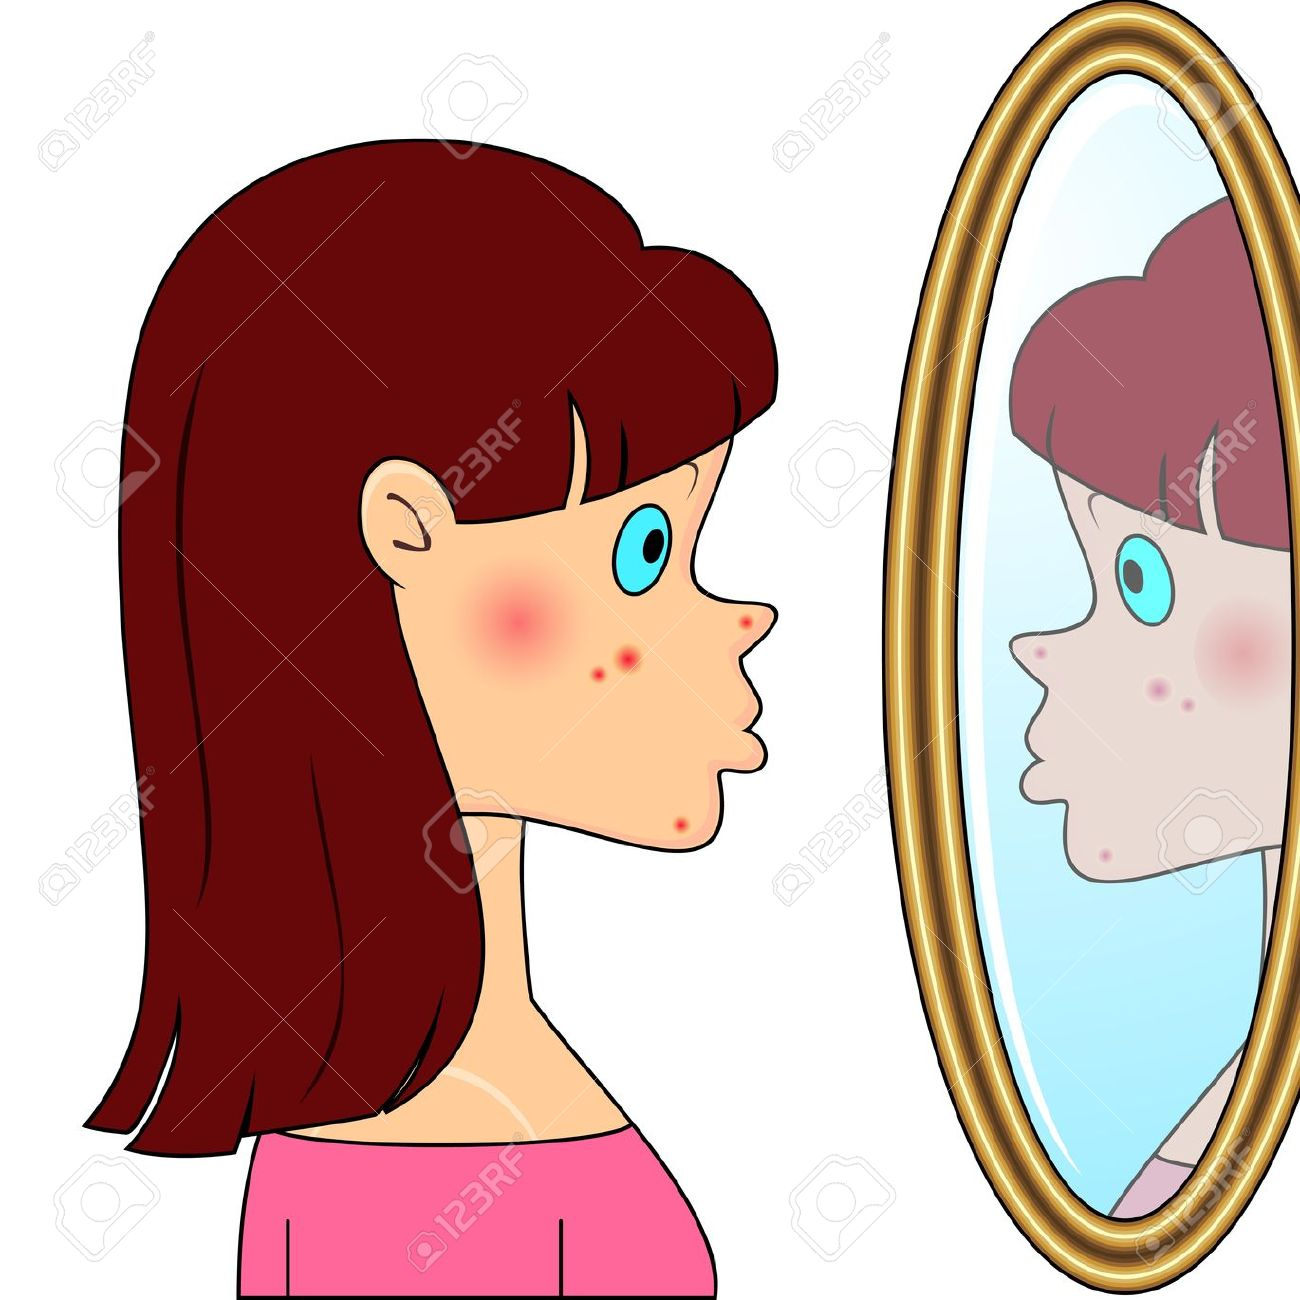 Girl looking in mirror clipart sad.